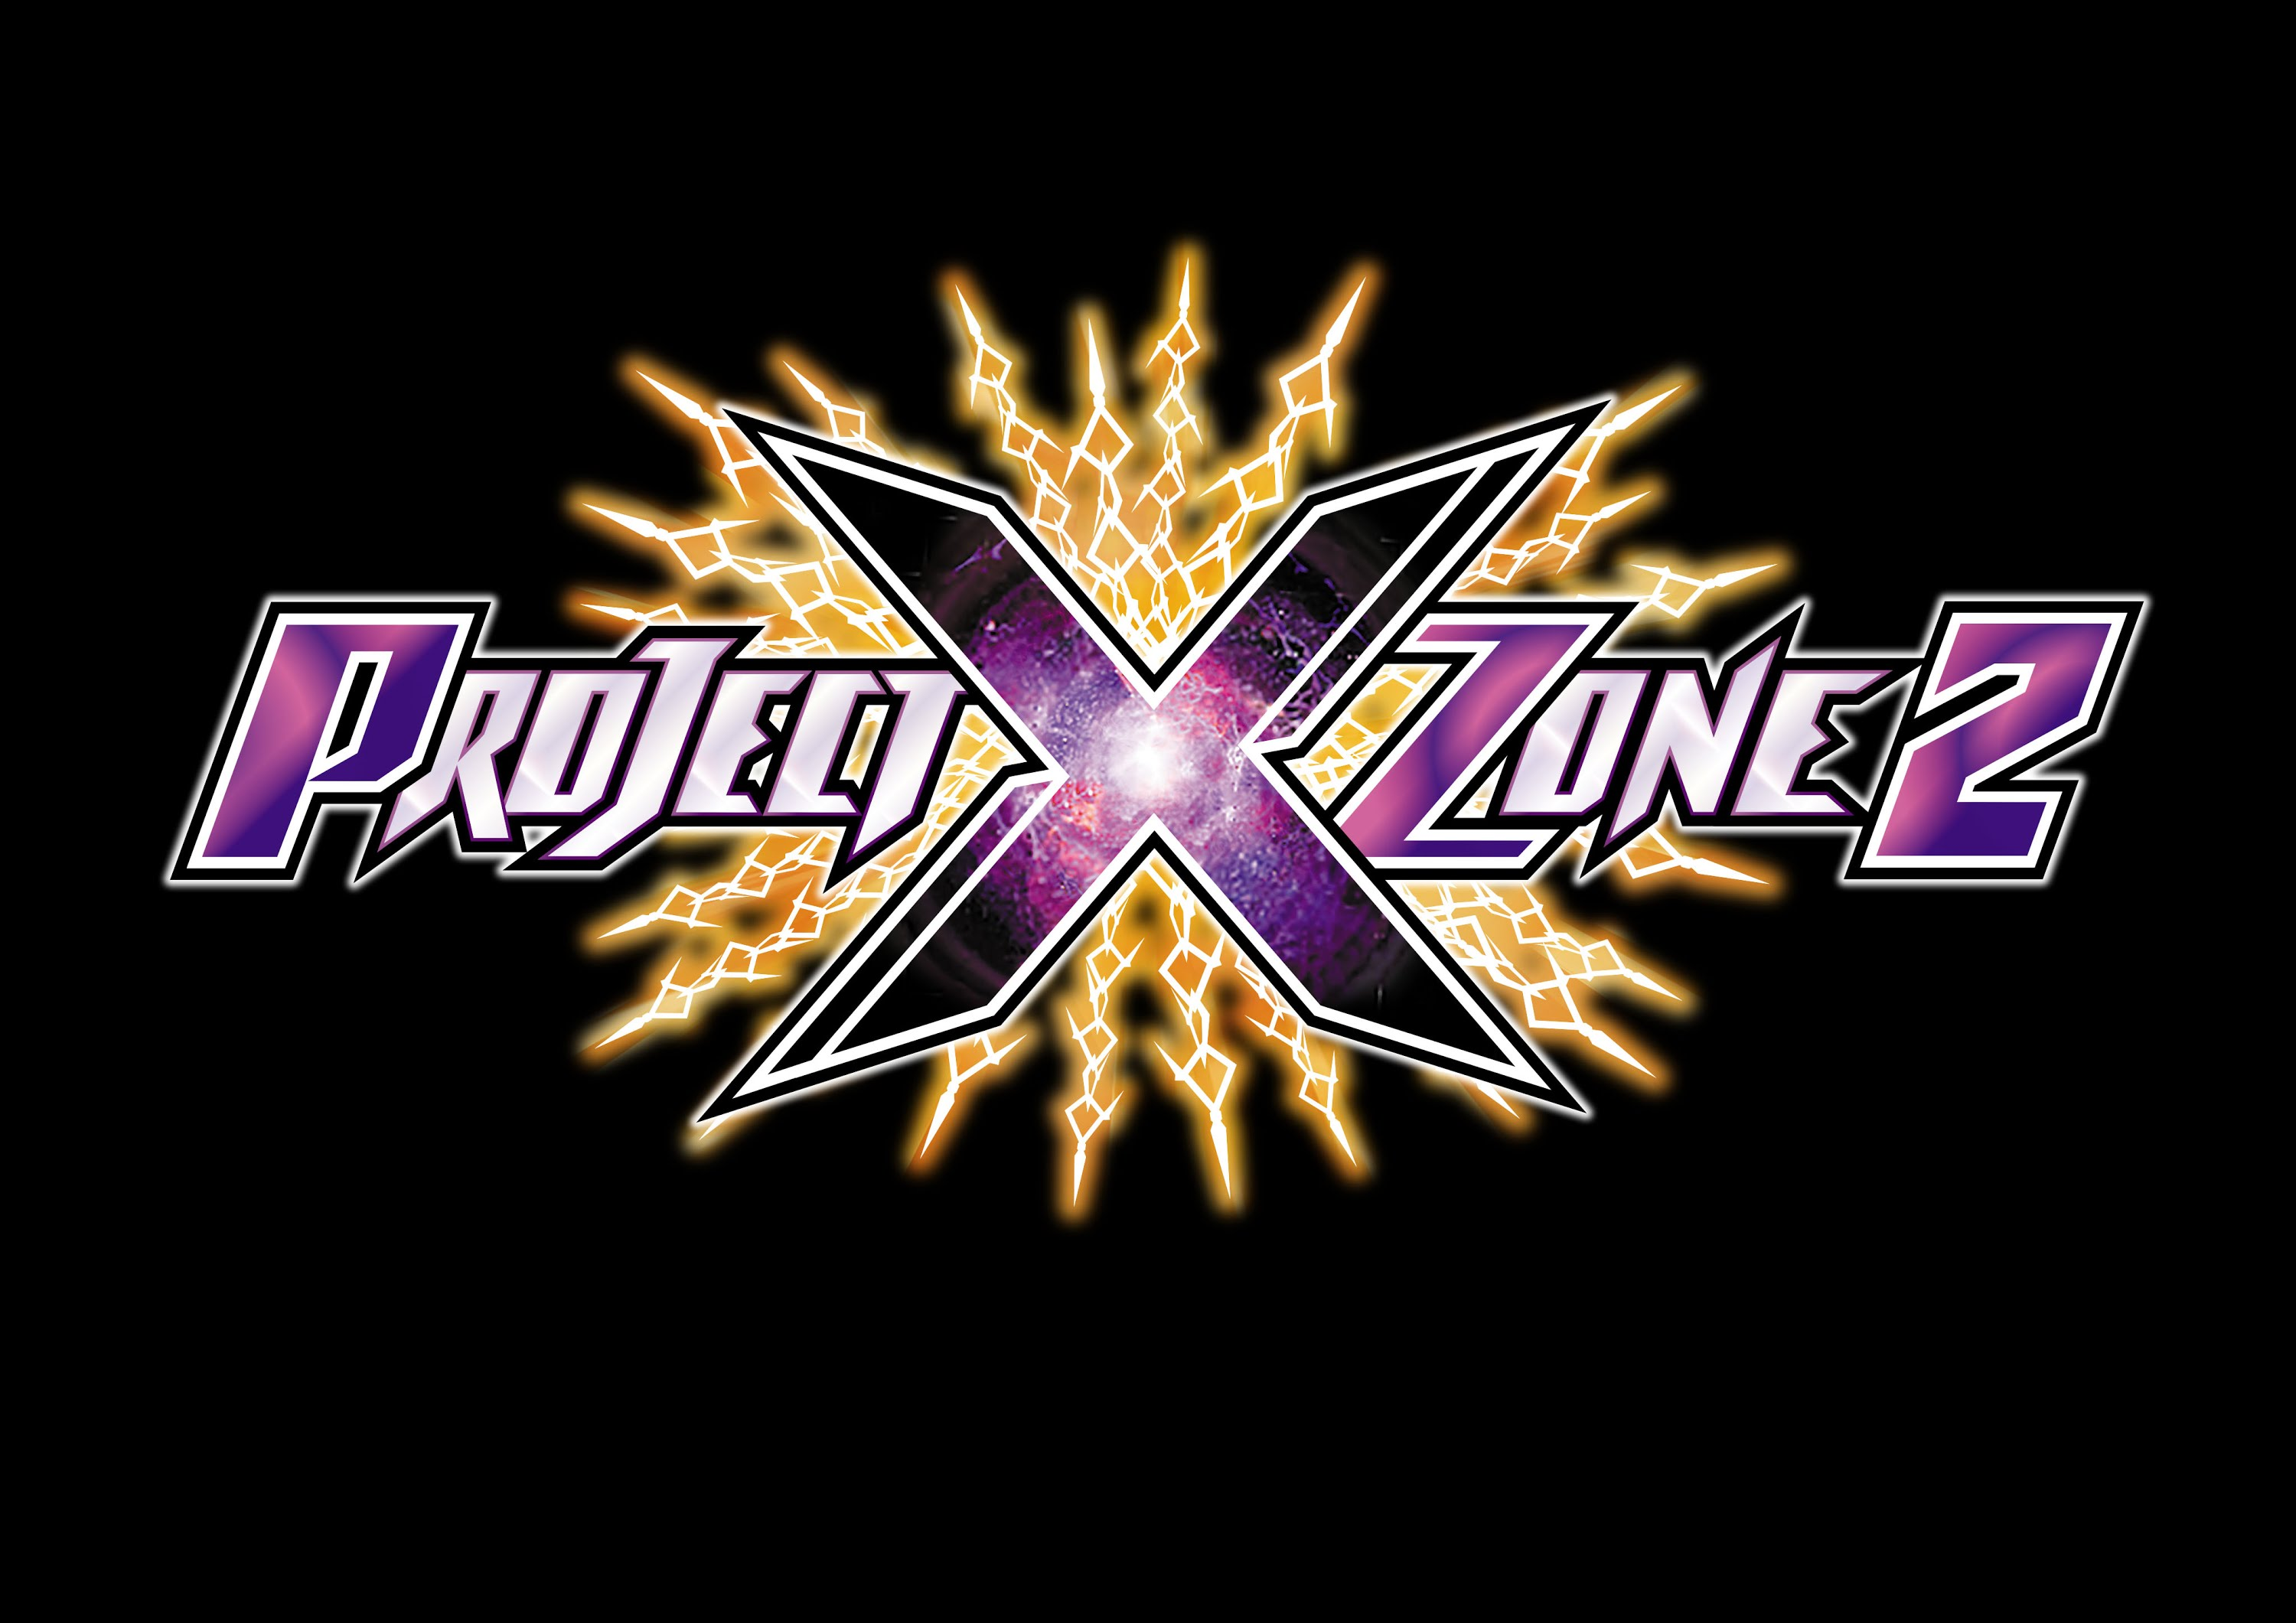 Modojo | Project X Zone 2 Officially Announced for 3DS